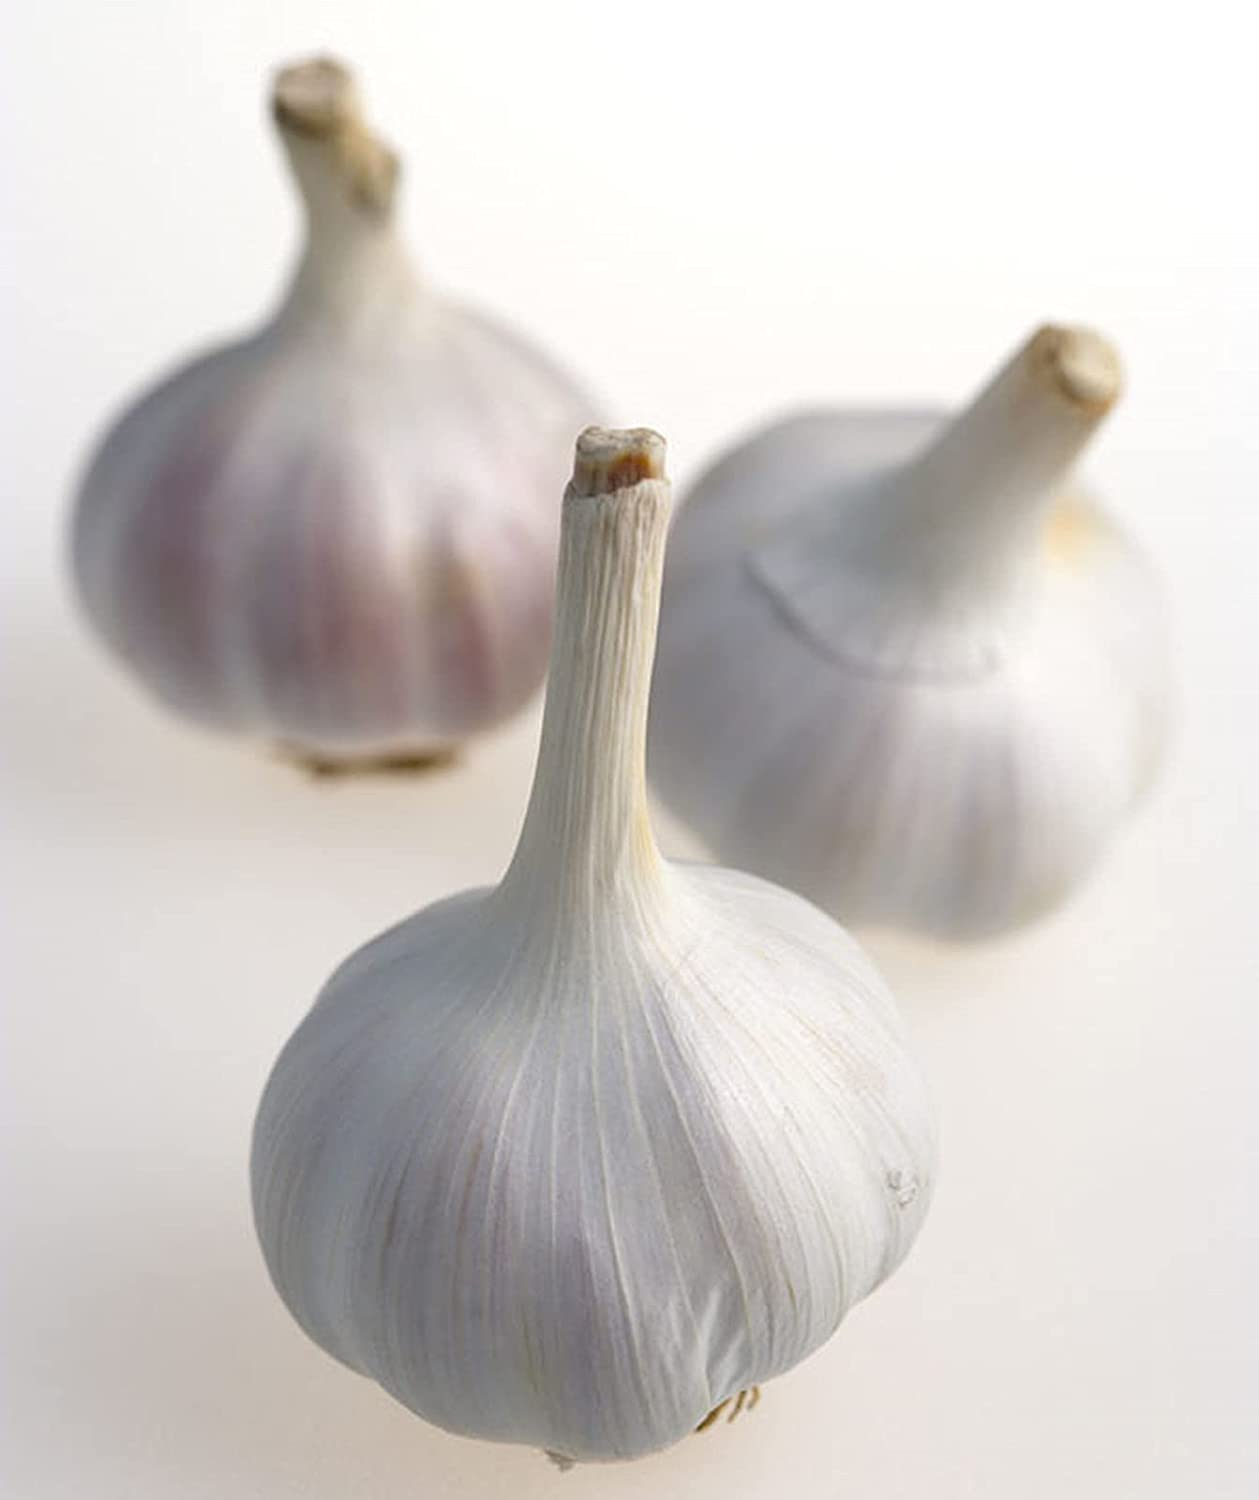 Fixed price for sale Garlic Bulb Healthy Brand Cheap Sale Venue Bulbs germinat to Easy Organic